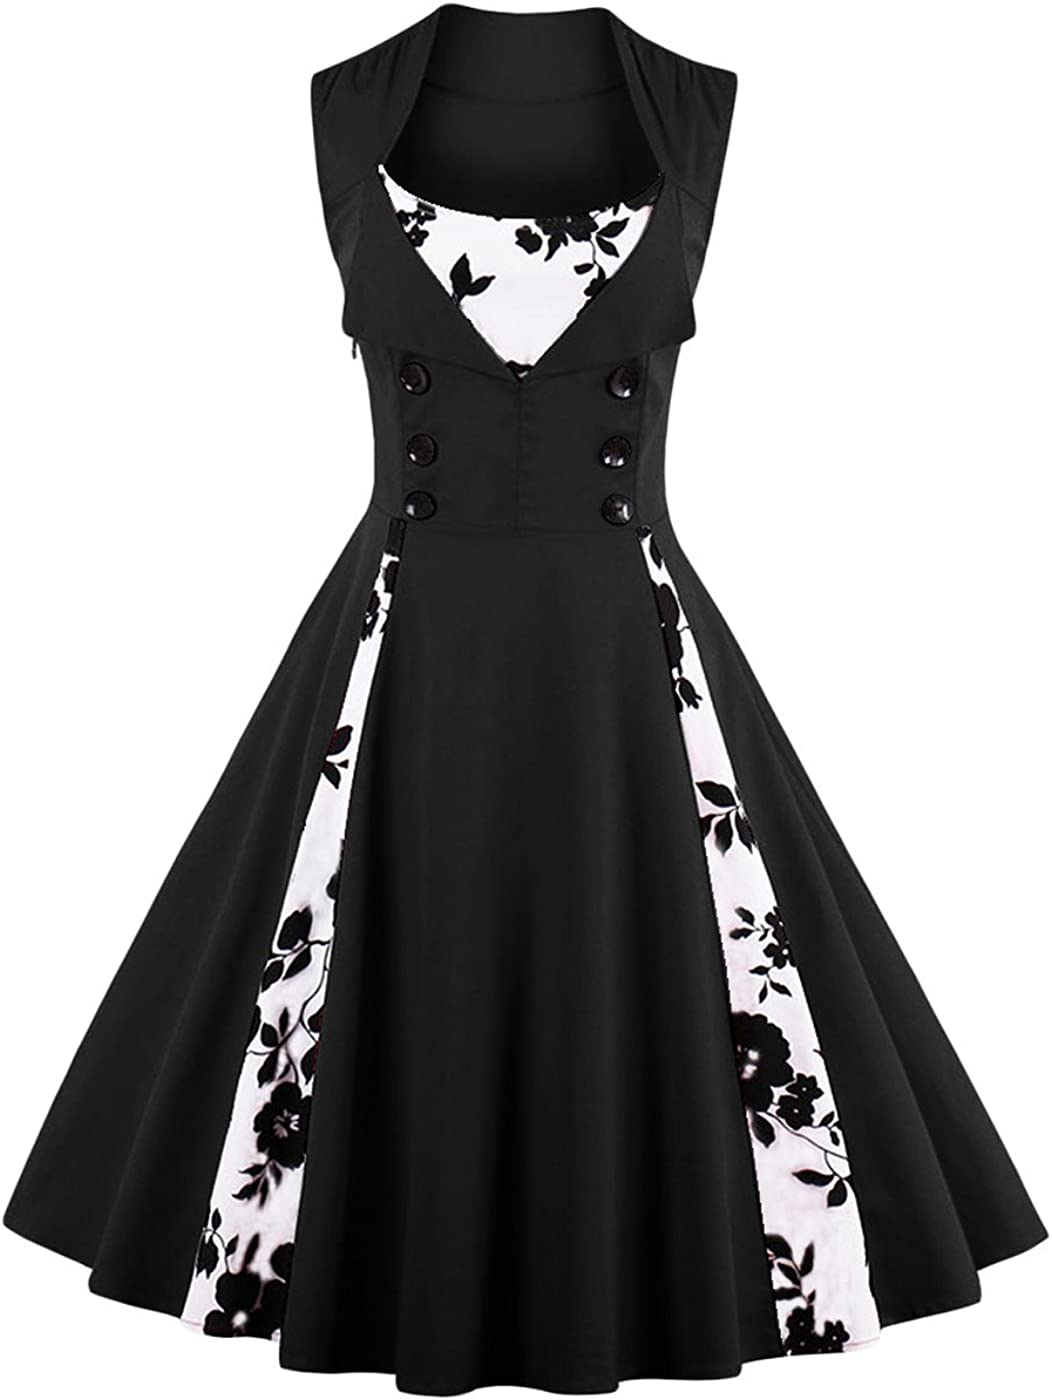 TALLA L. VERNASSA 50s Vestidos Vintage,Mujeres 1950s Vintage A-Line Rockabilly Clásico Verano Dress for Evening Party Cocktail, Multicolor, S-Plus Size 4XL 1357f-negro